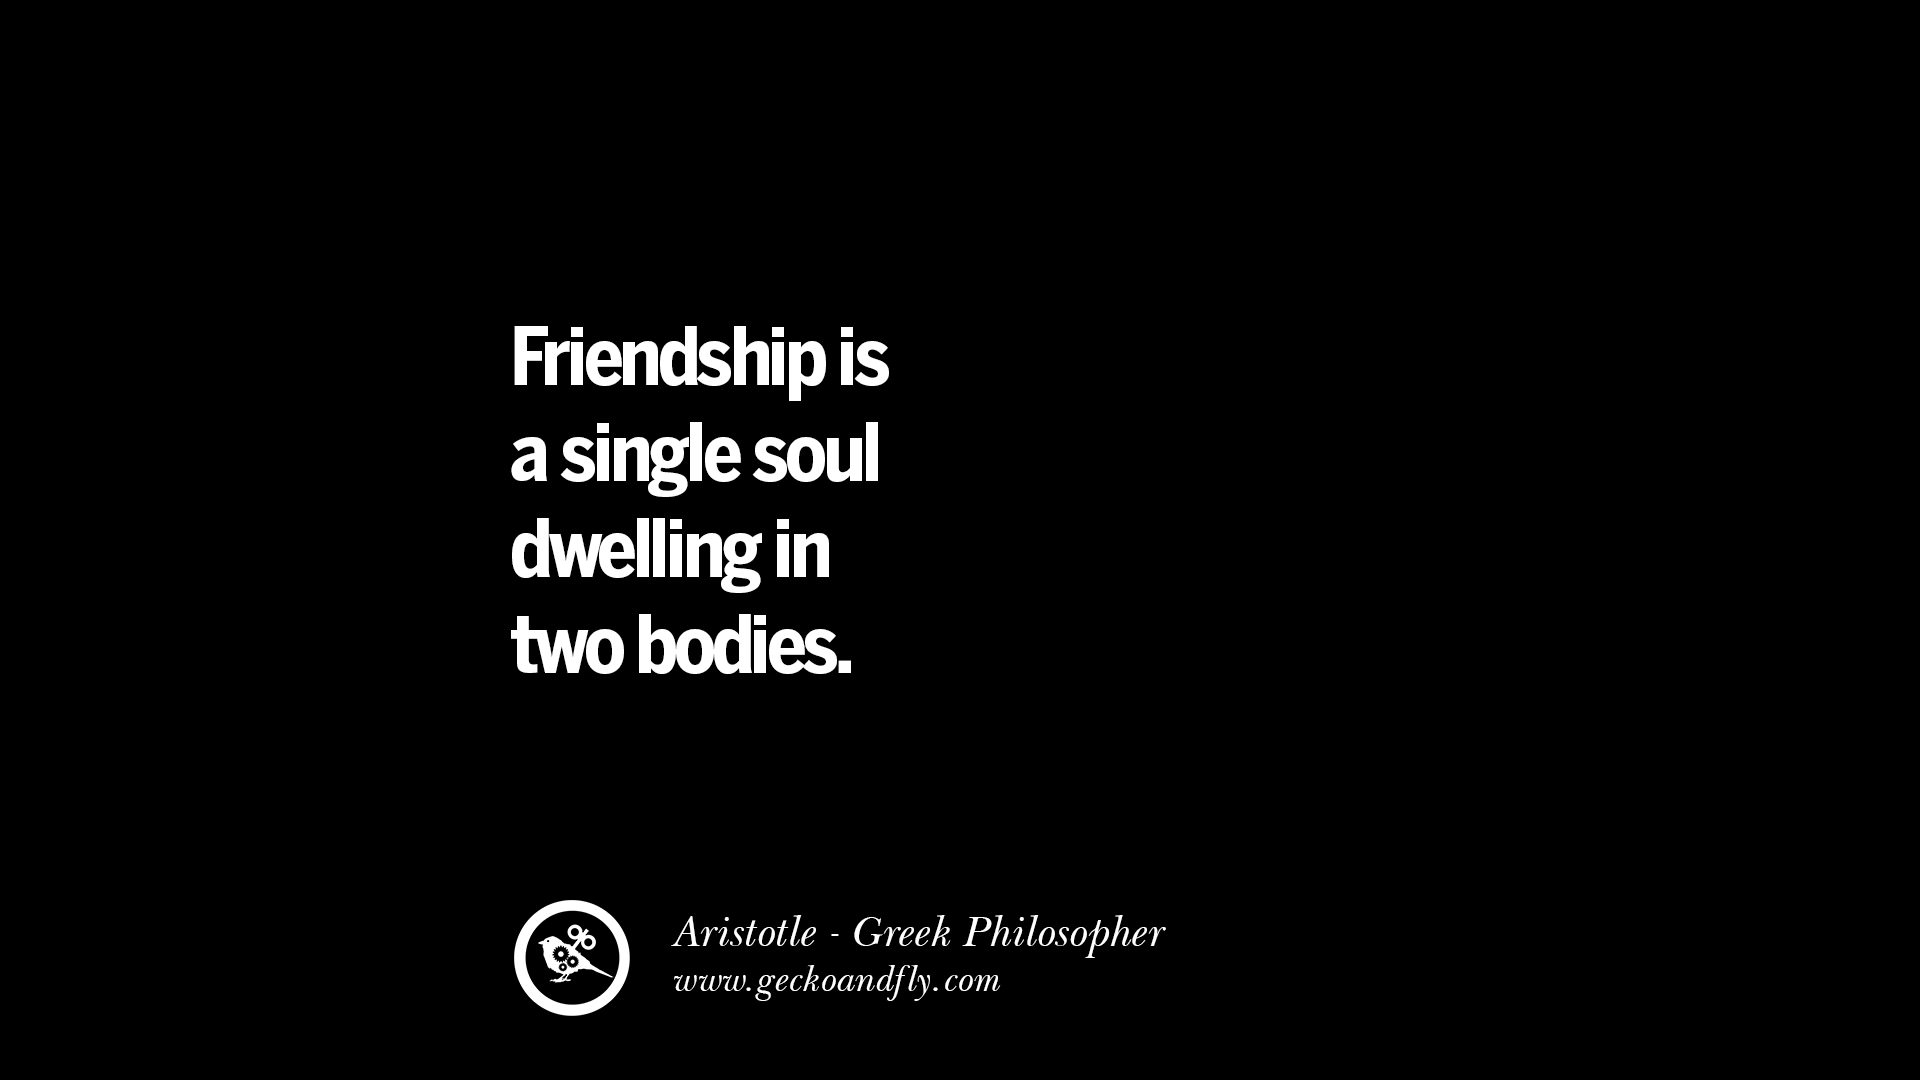 Wise Quotes About Friendship 40 Famous Aristotle Quotes On Ethics Love Life Politics And